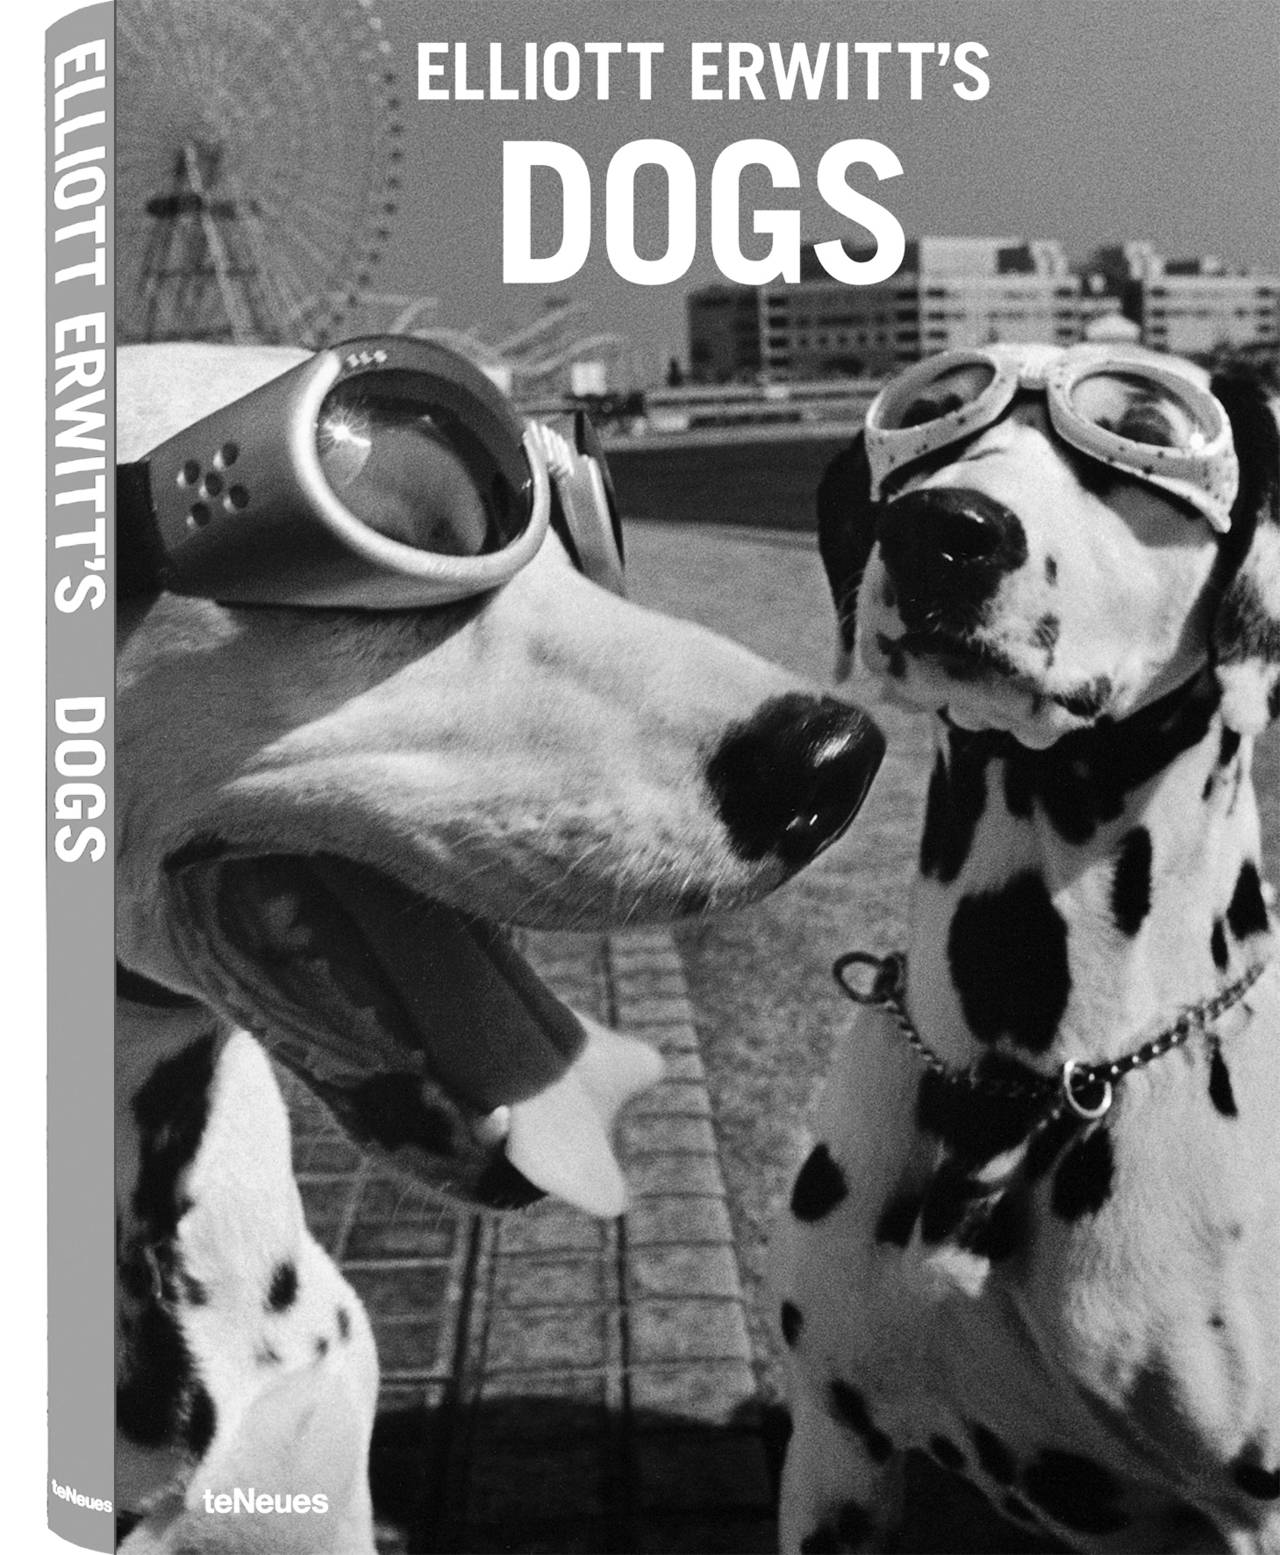 © Elliott Erwitt's Dogs, published by teNeues, www.teneues.com, Yokohama, Japan, 2003, Photo © Elliott Erwitt/Magnum.